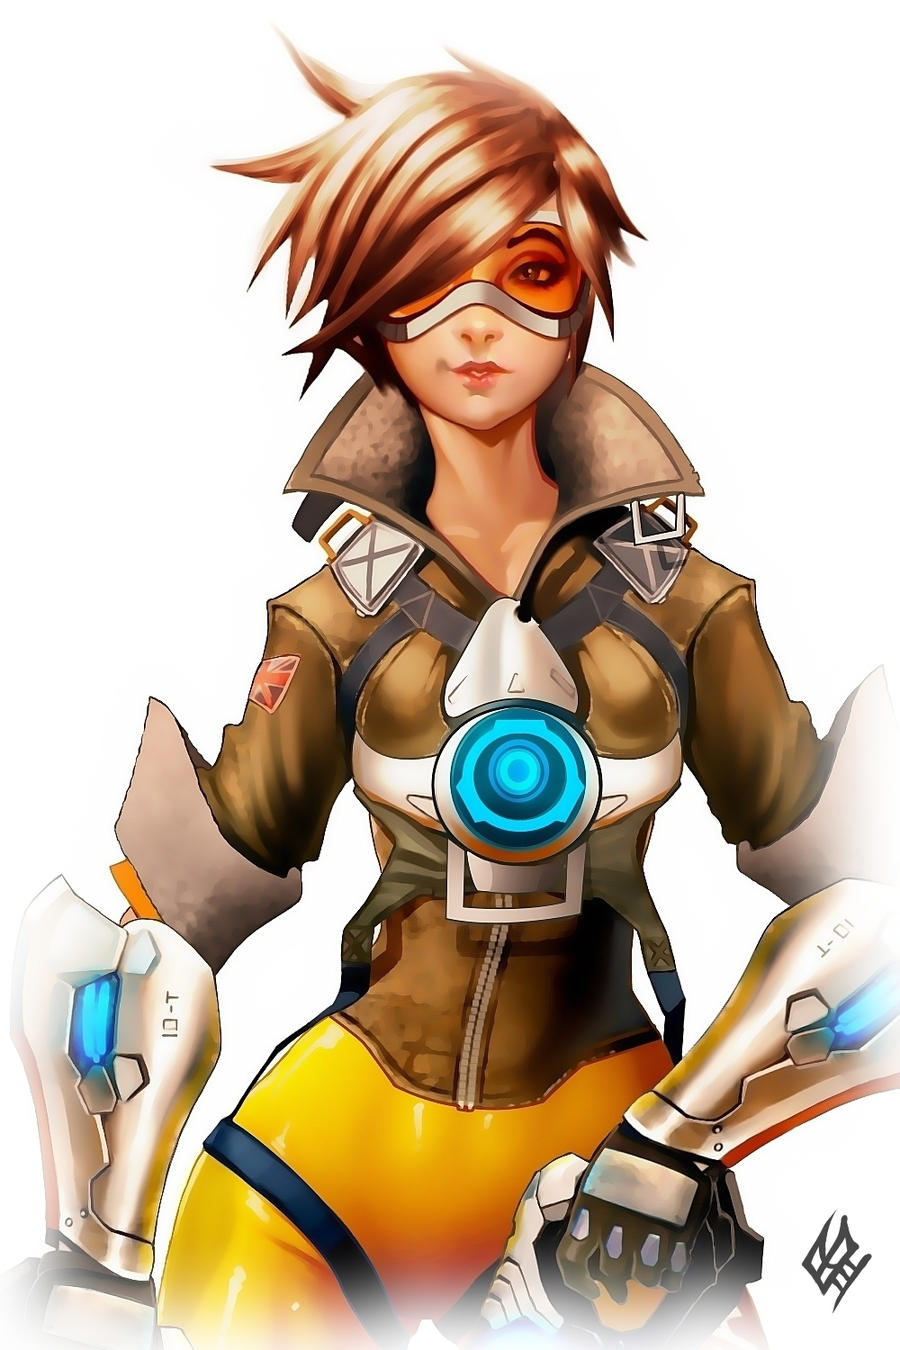 Anime Characters Male Reader : Tracer by wolfenborg on deviantart